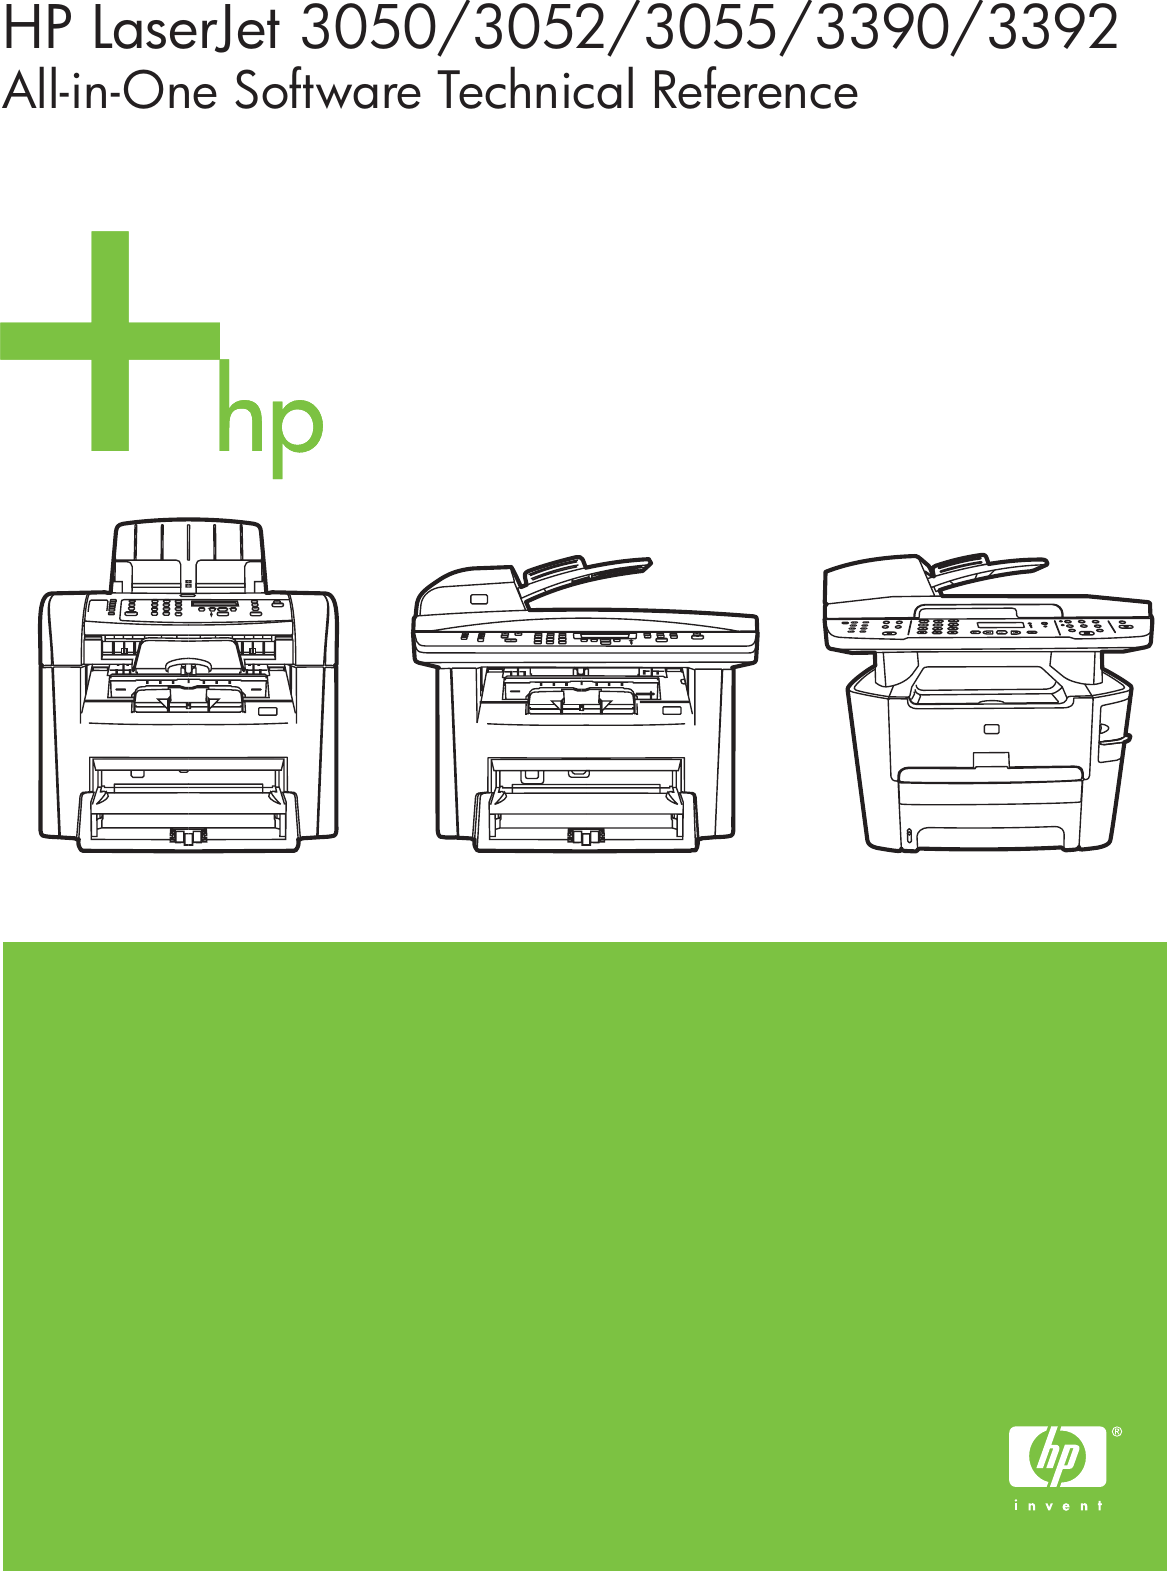 hp laserjet 3390 scanning mutiple pages into one document